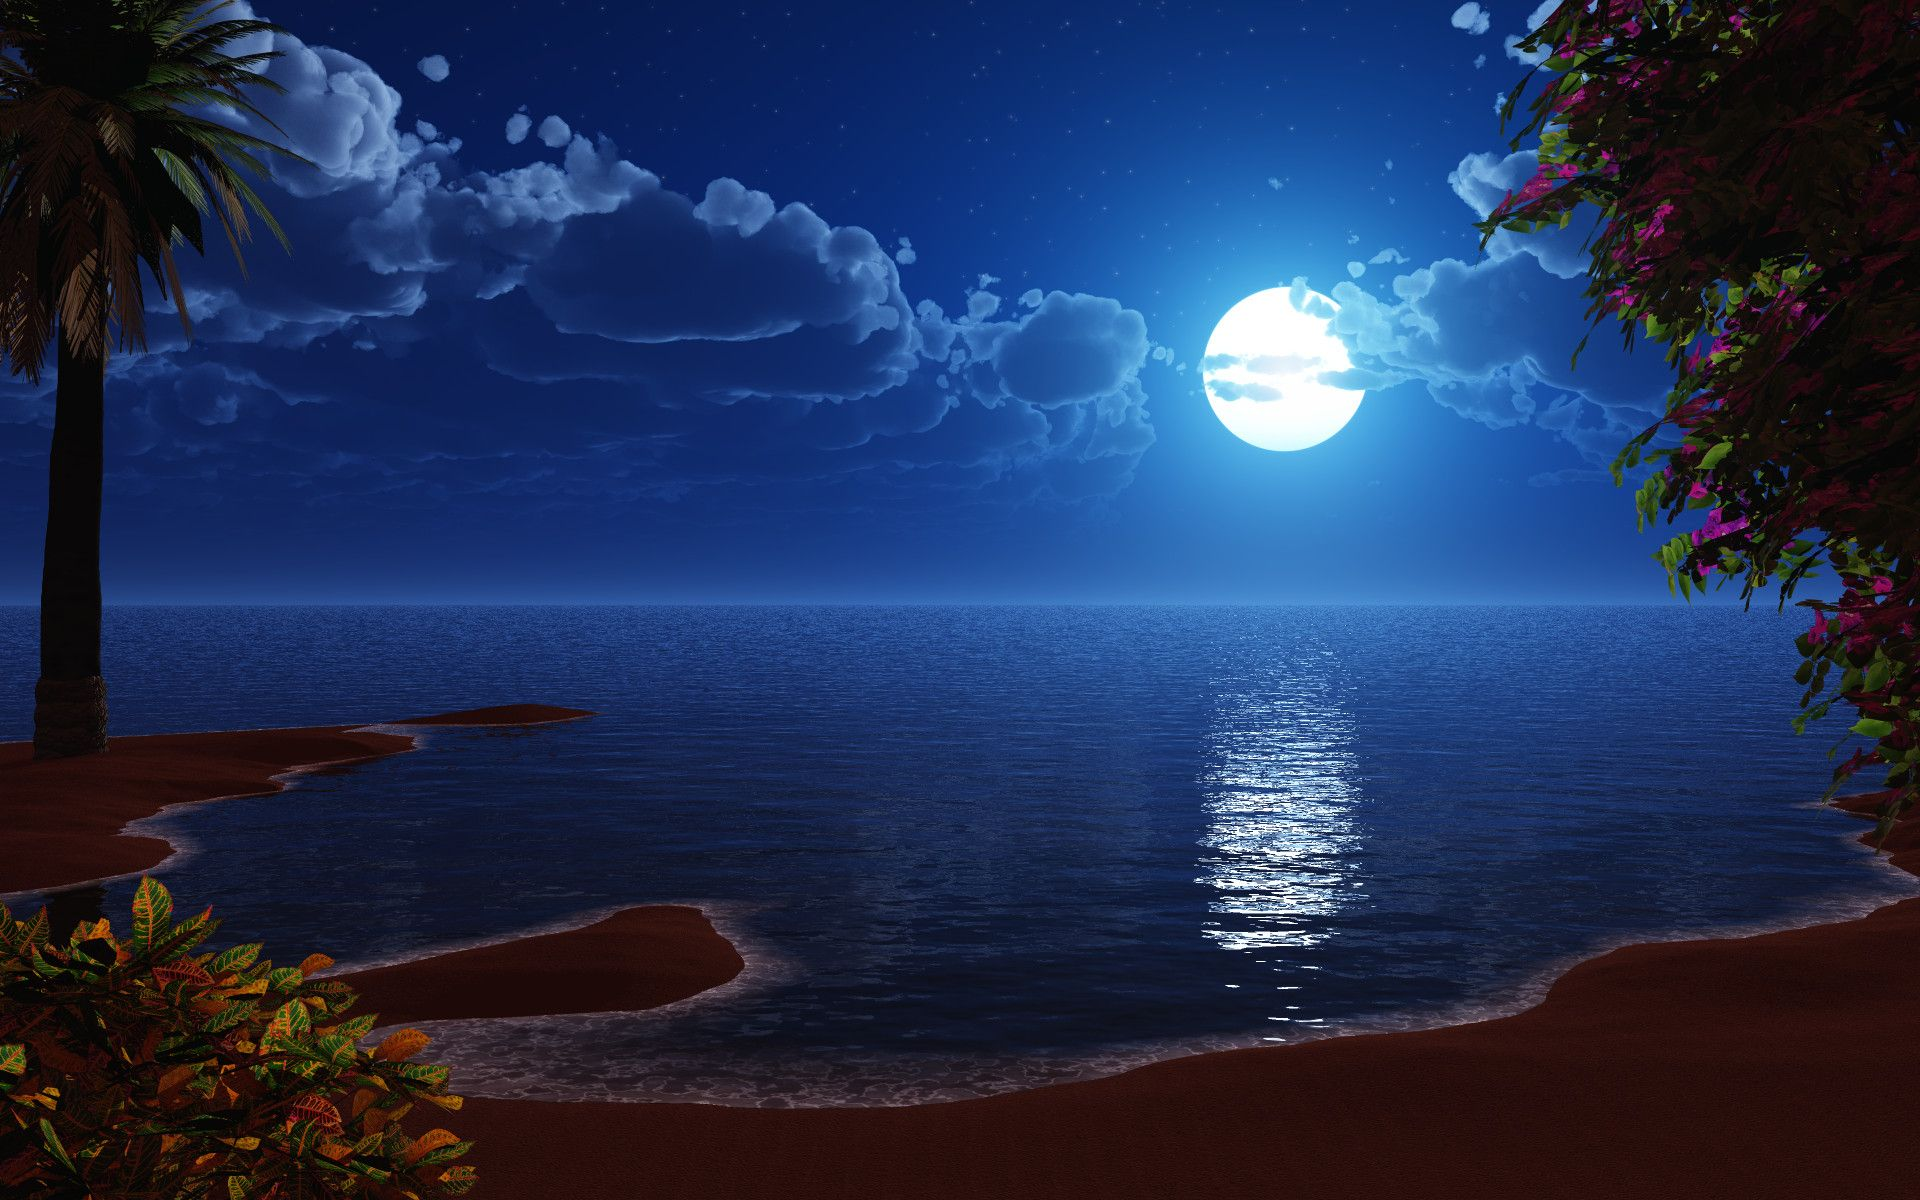 Beautiful Desktop Wallpapers And Backgrounds In 2020 Ocean At Night Beach At Night Beach Night